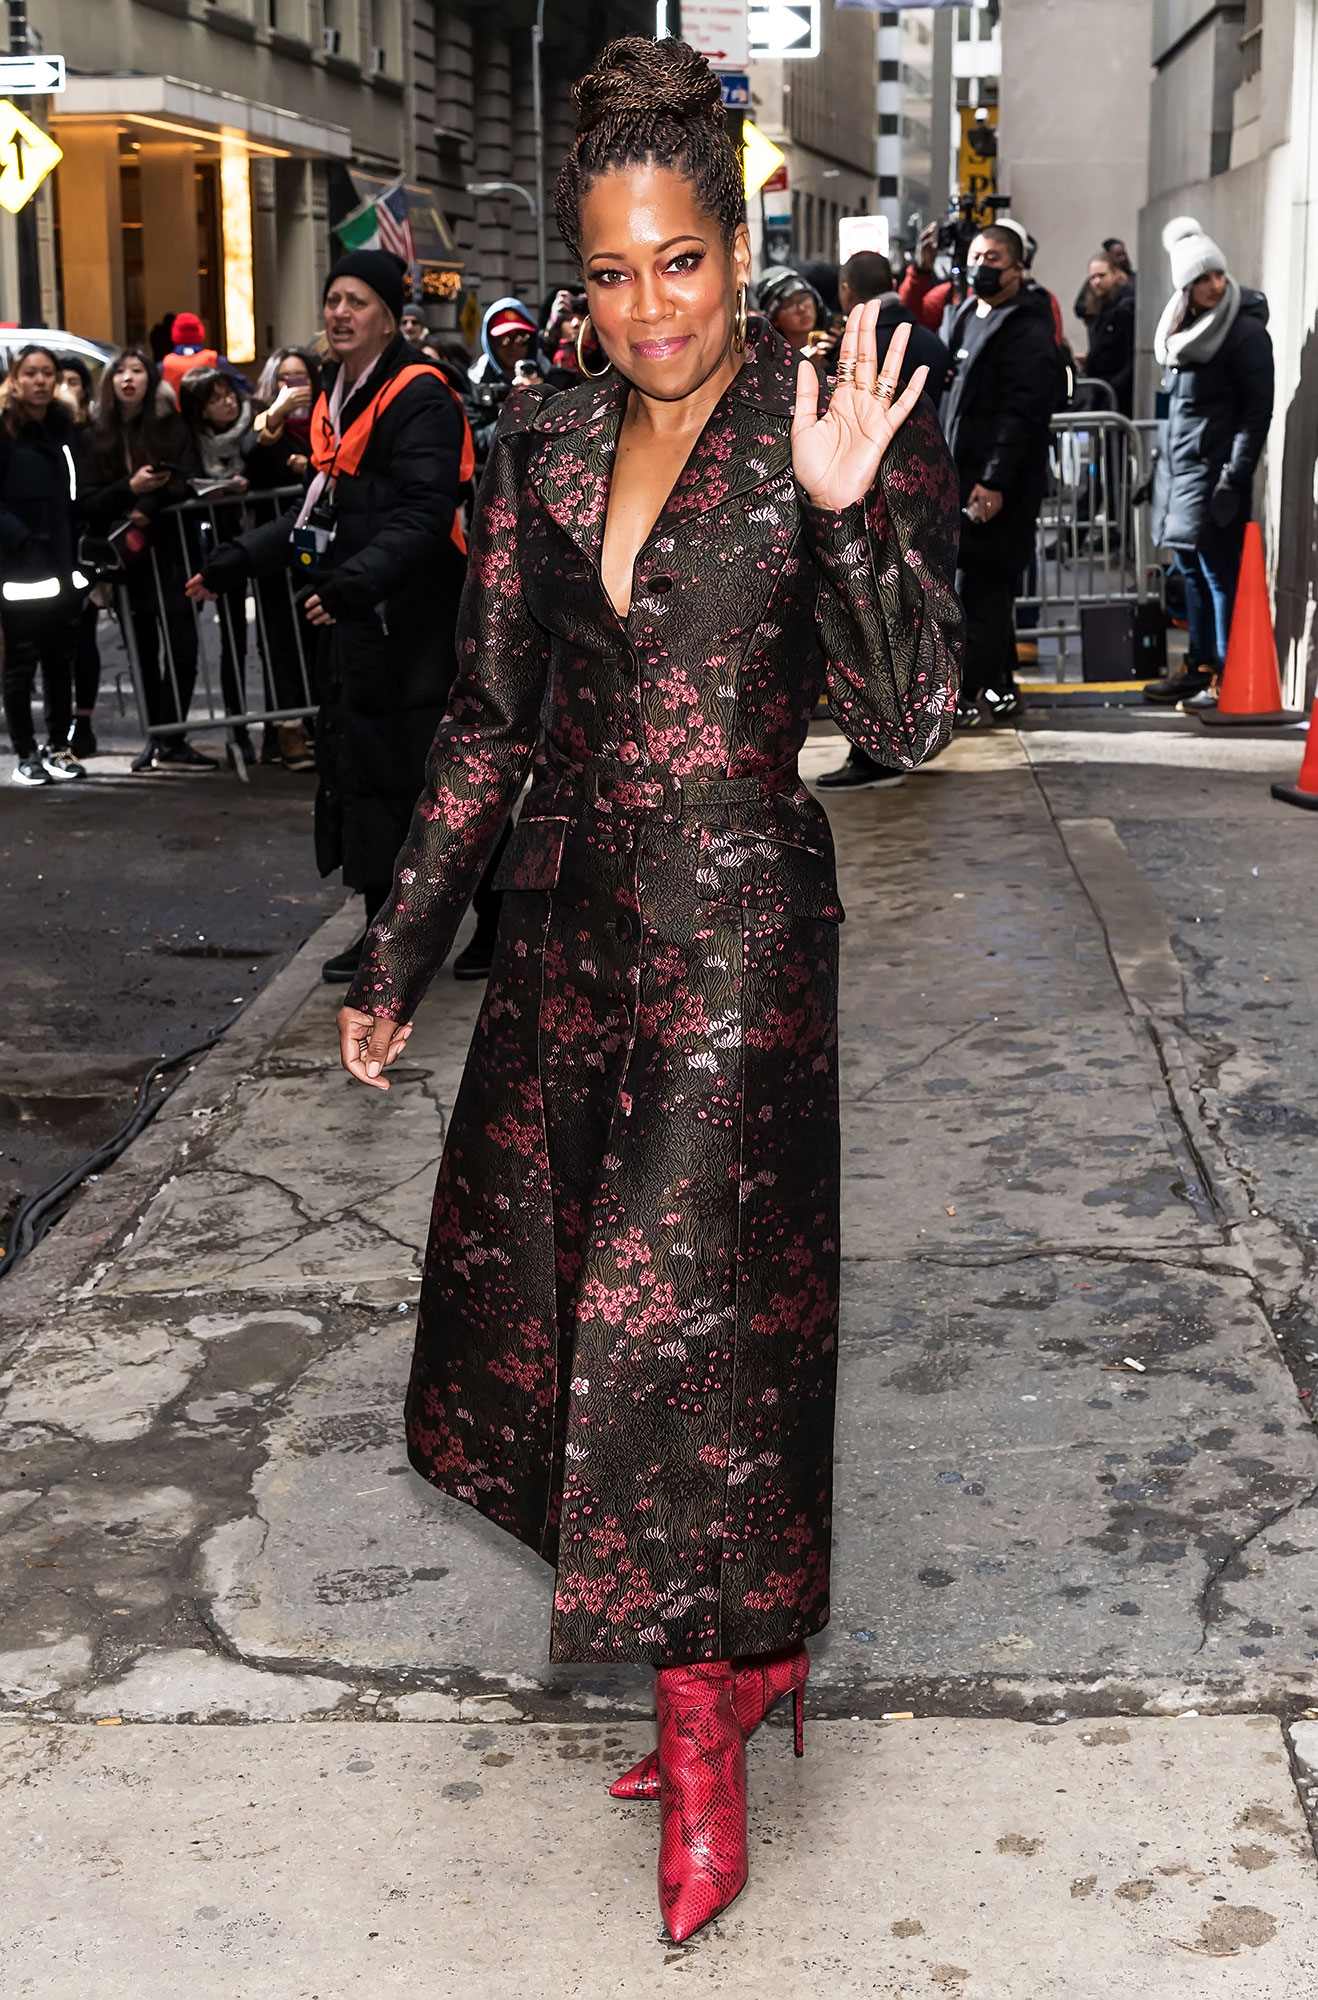 Regina King nyfw new york fashion week - The If Beale Street Could Talk star attended the Michael Kors show on February 13 in a gorgeous floral pink and black coat with snakeskin heeled booties.